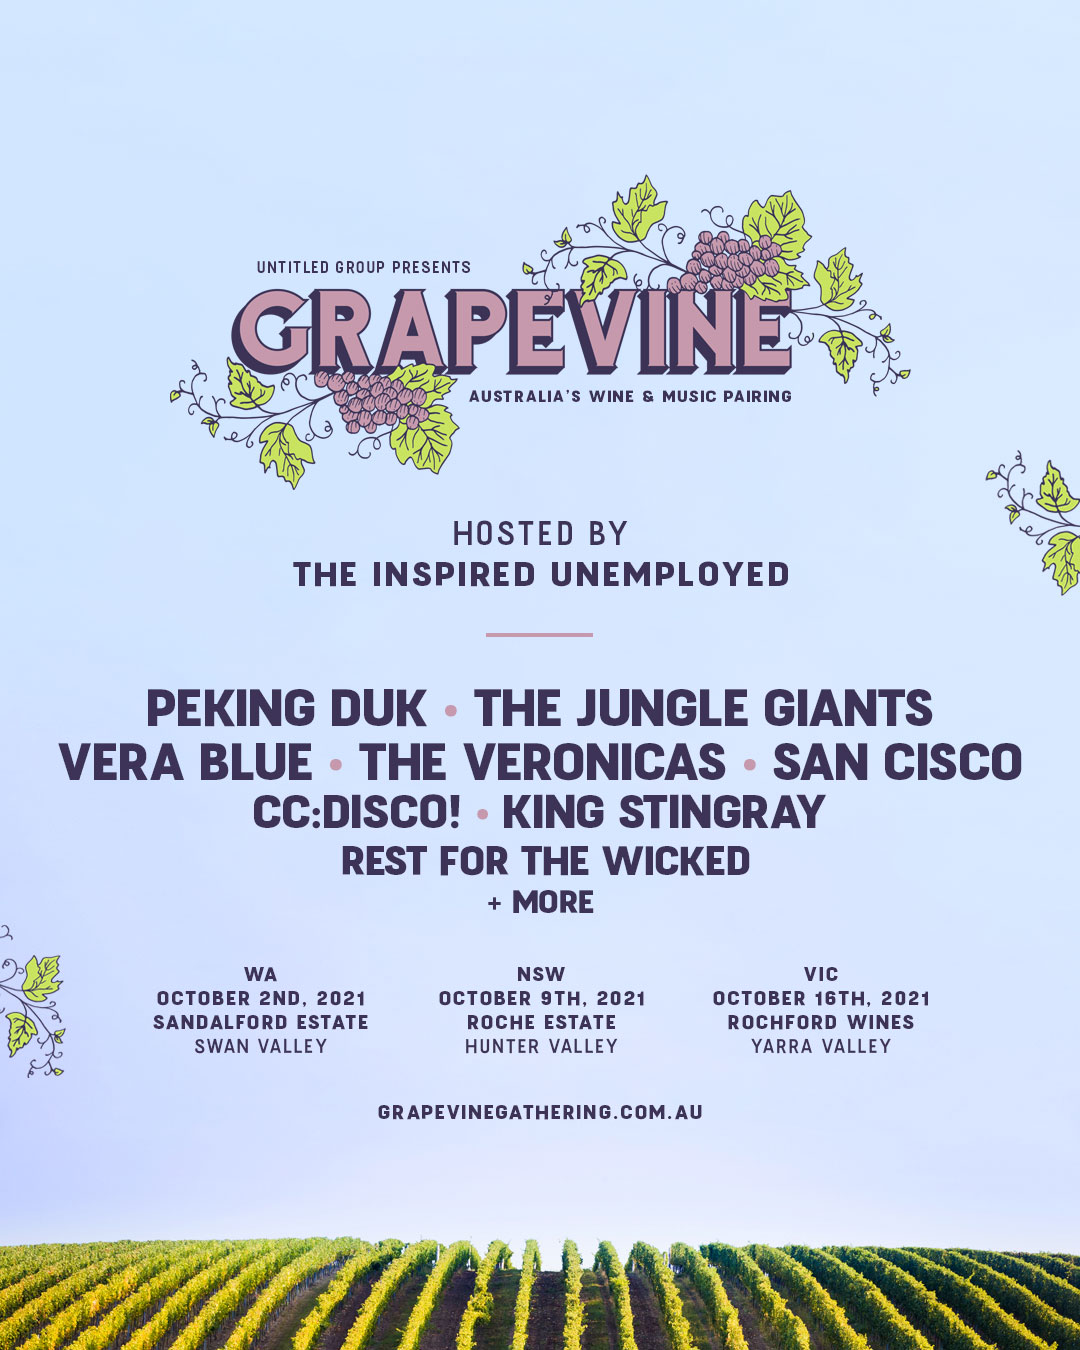 grapevine-gathering-2021-oz-edm-poster